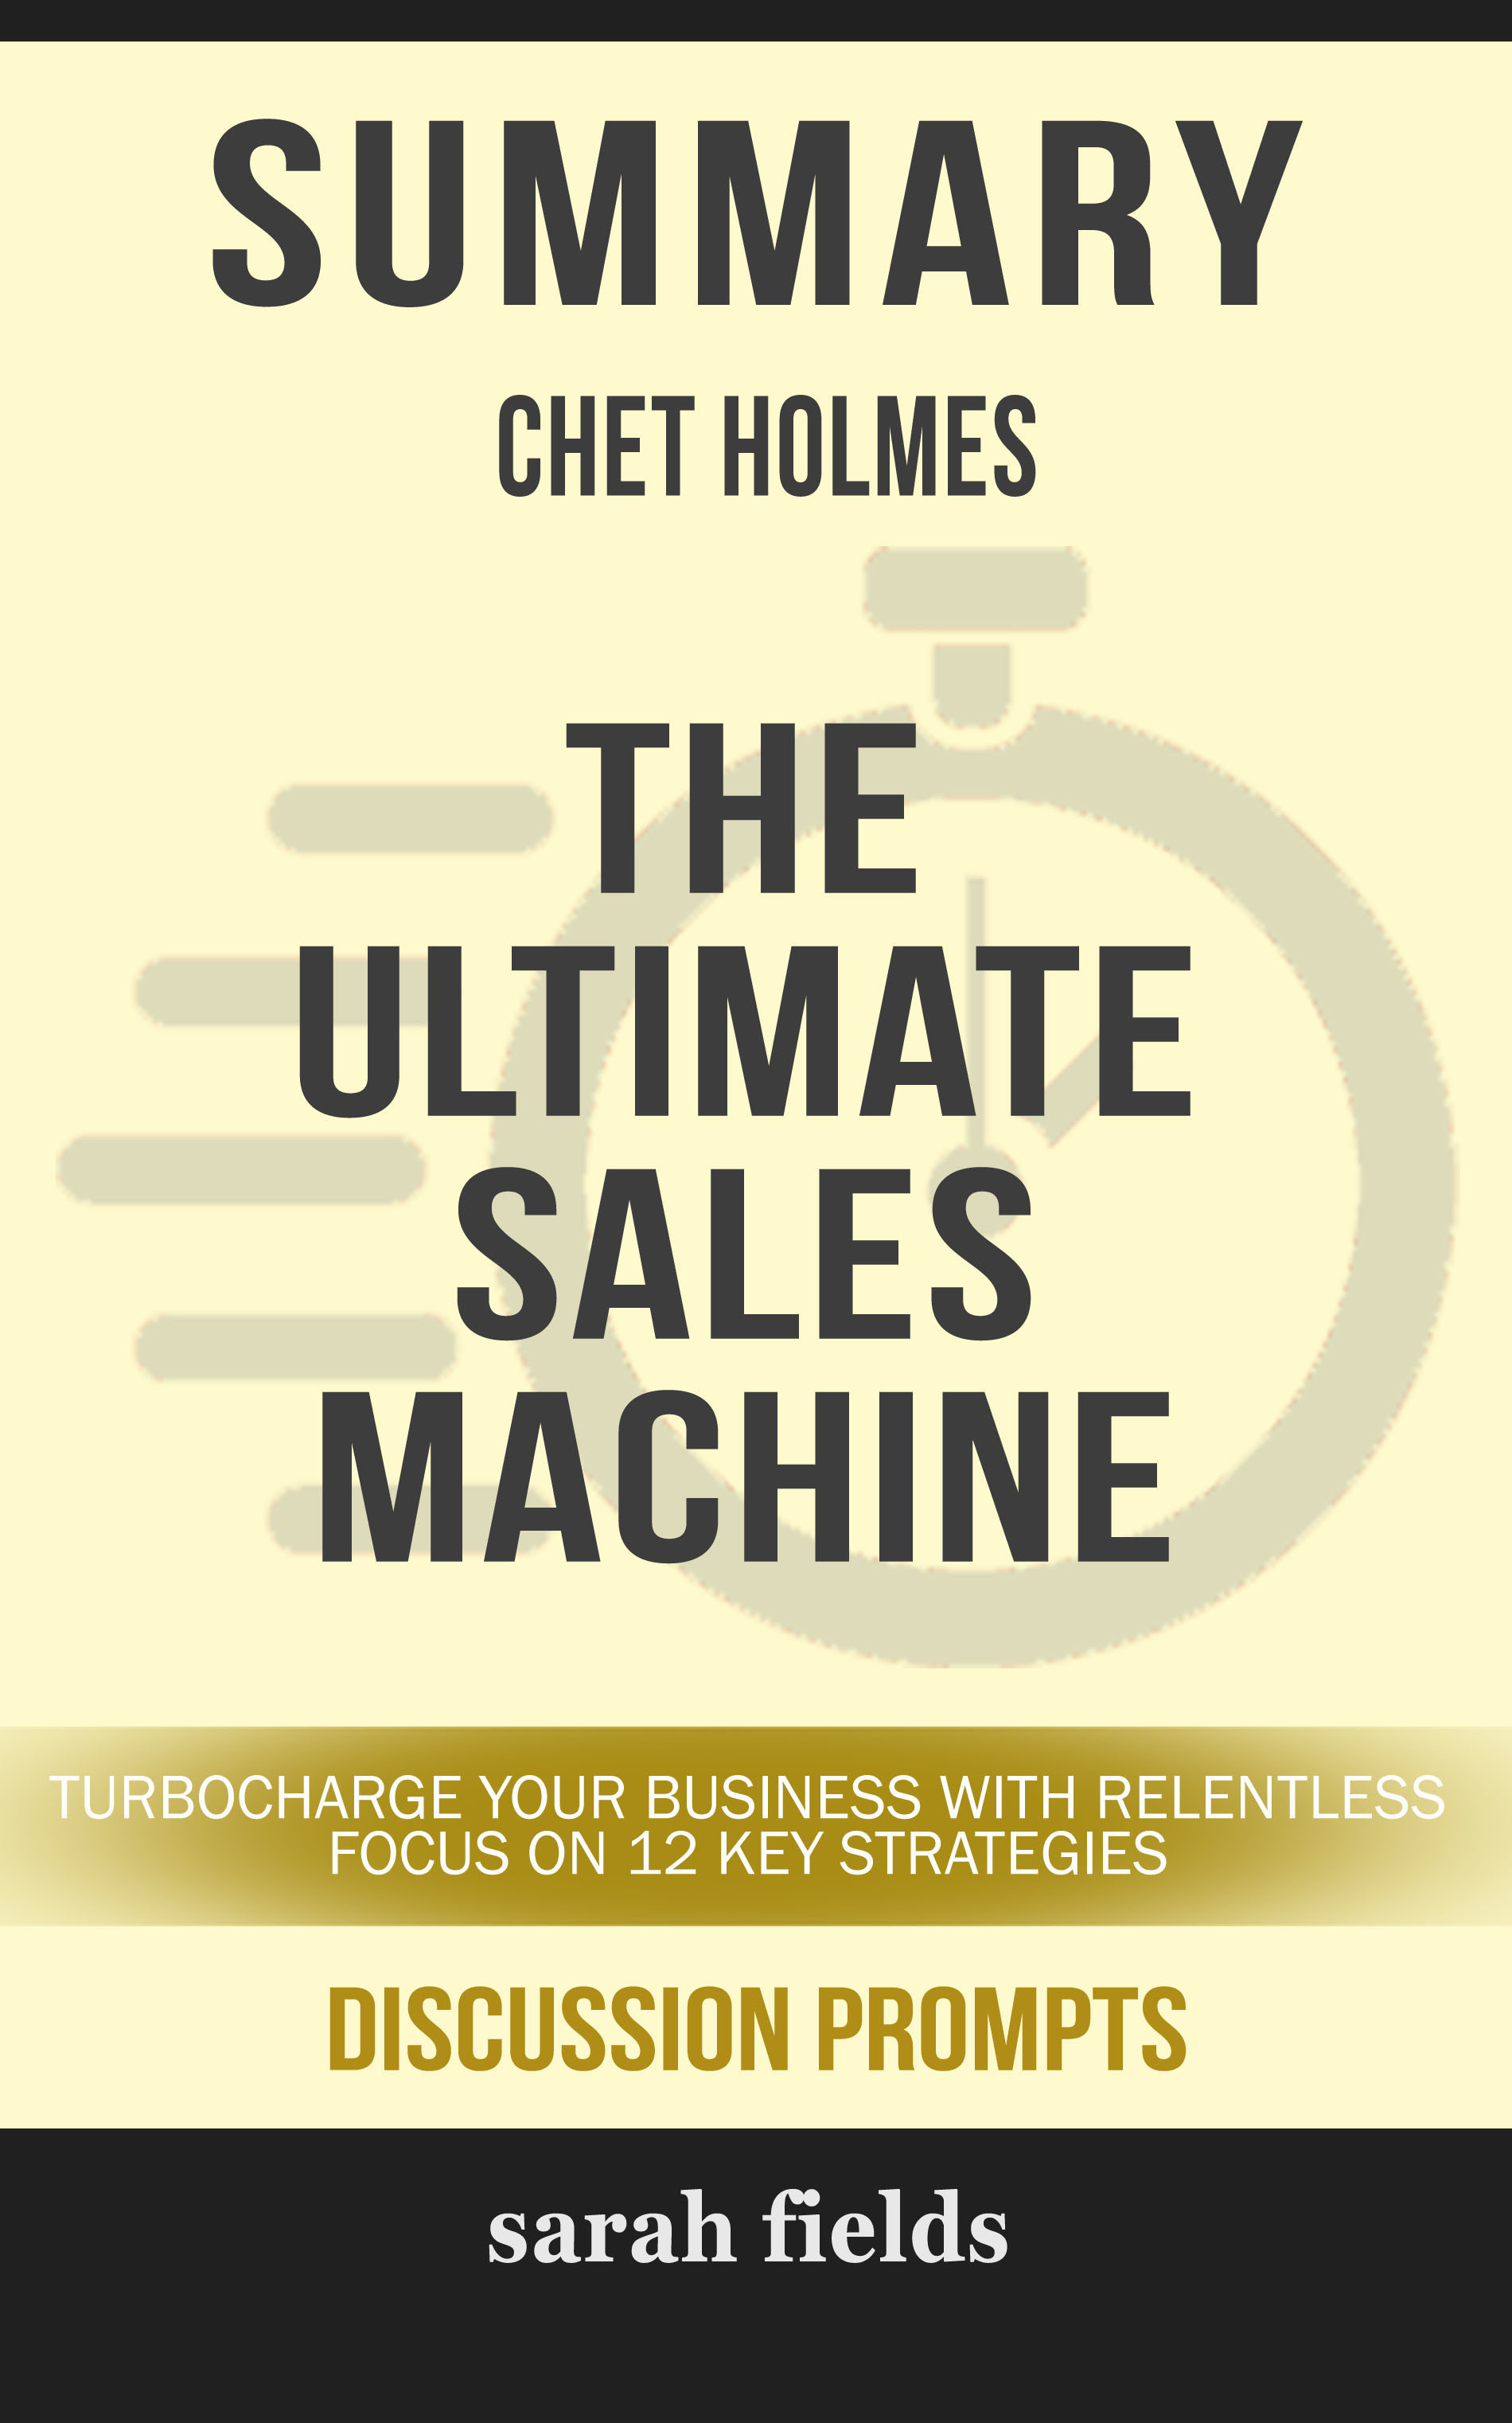 Summary of The Ultimate Sales Machine: Turbocharge Your Business with Relentless Focus on 12 Key Strategies by Chet Holmes